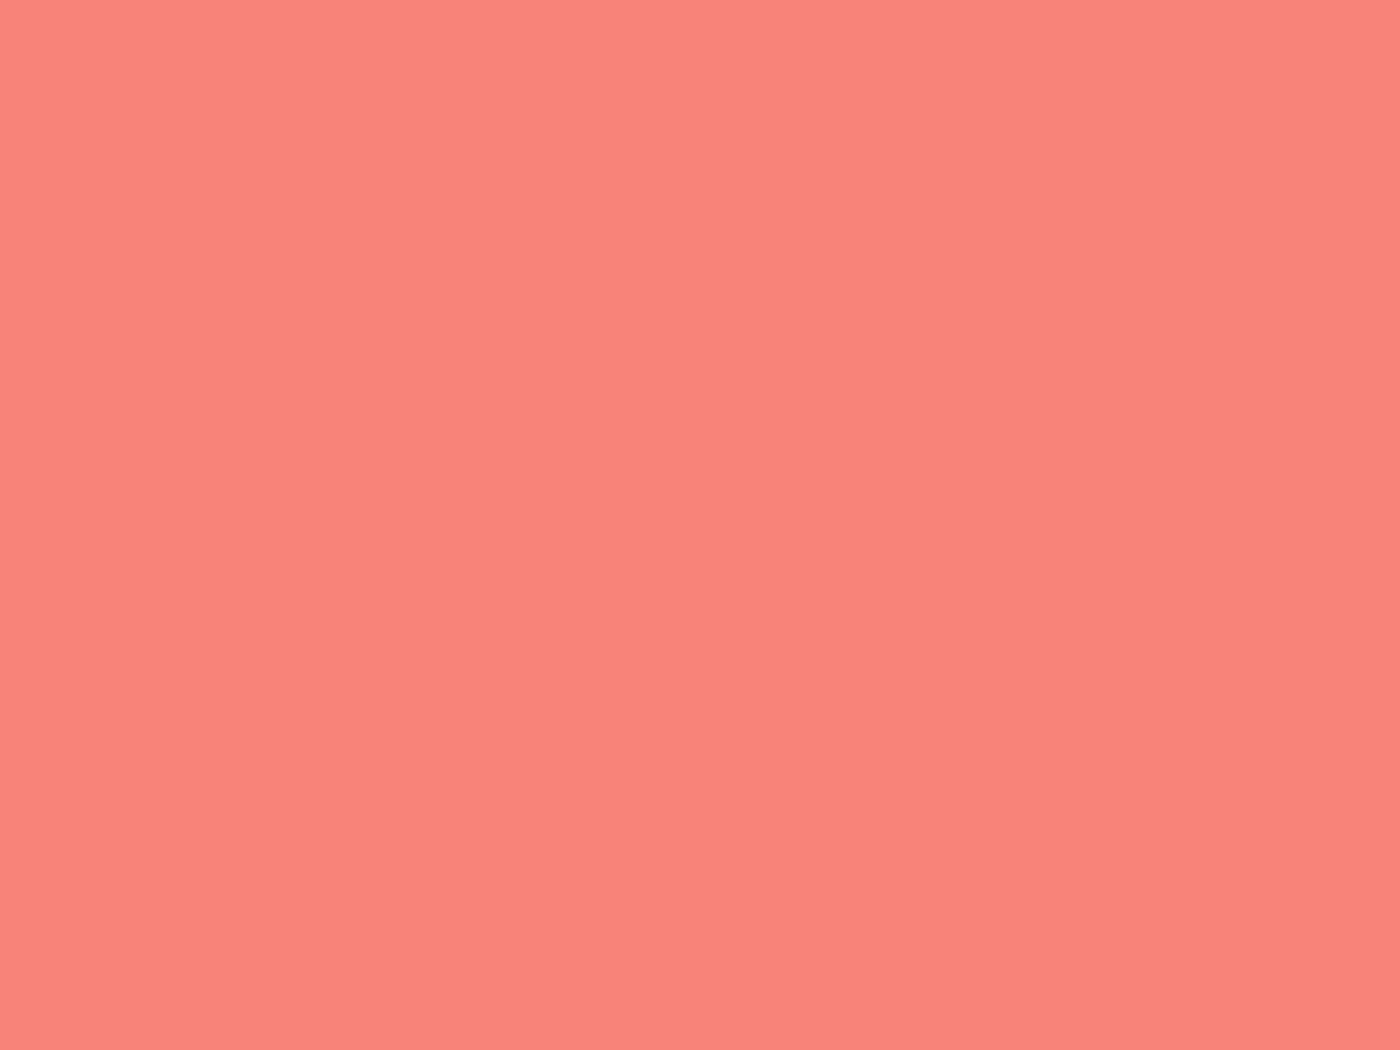 1400x1050 Coral Pink Solid Color Background